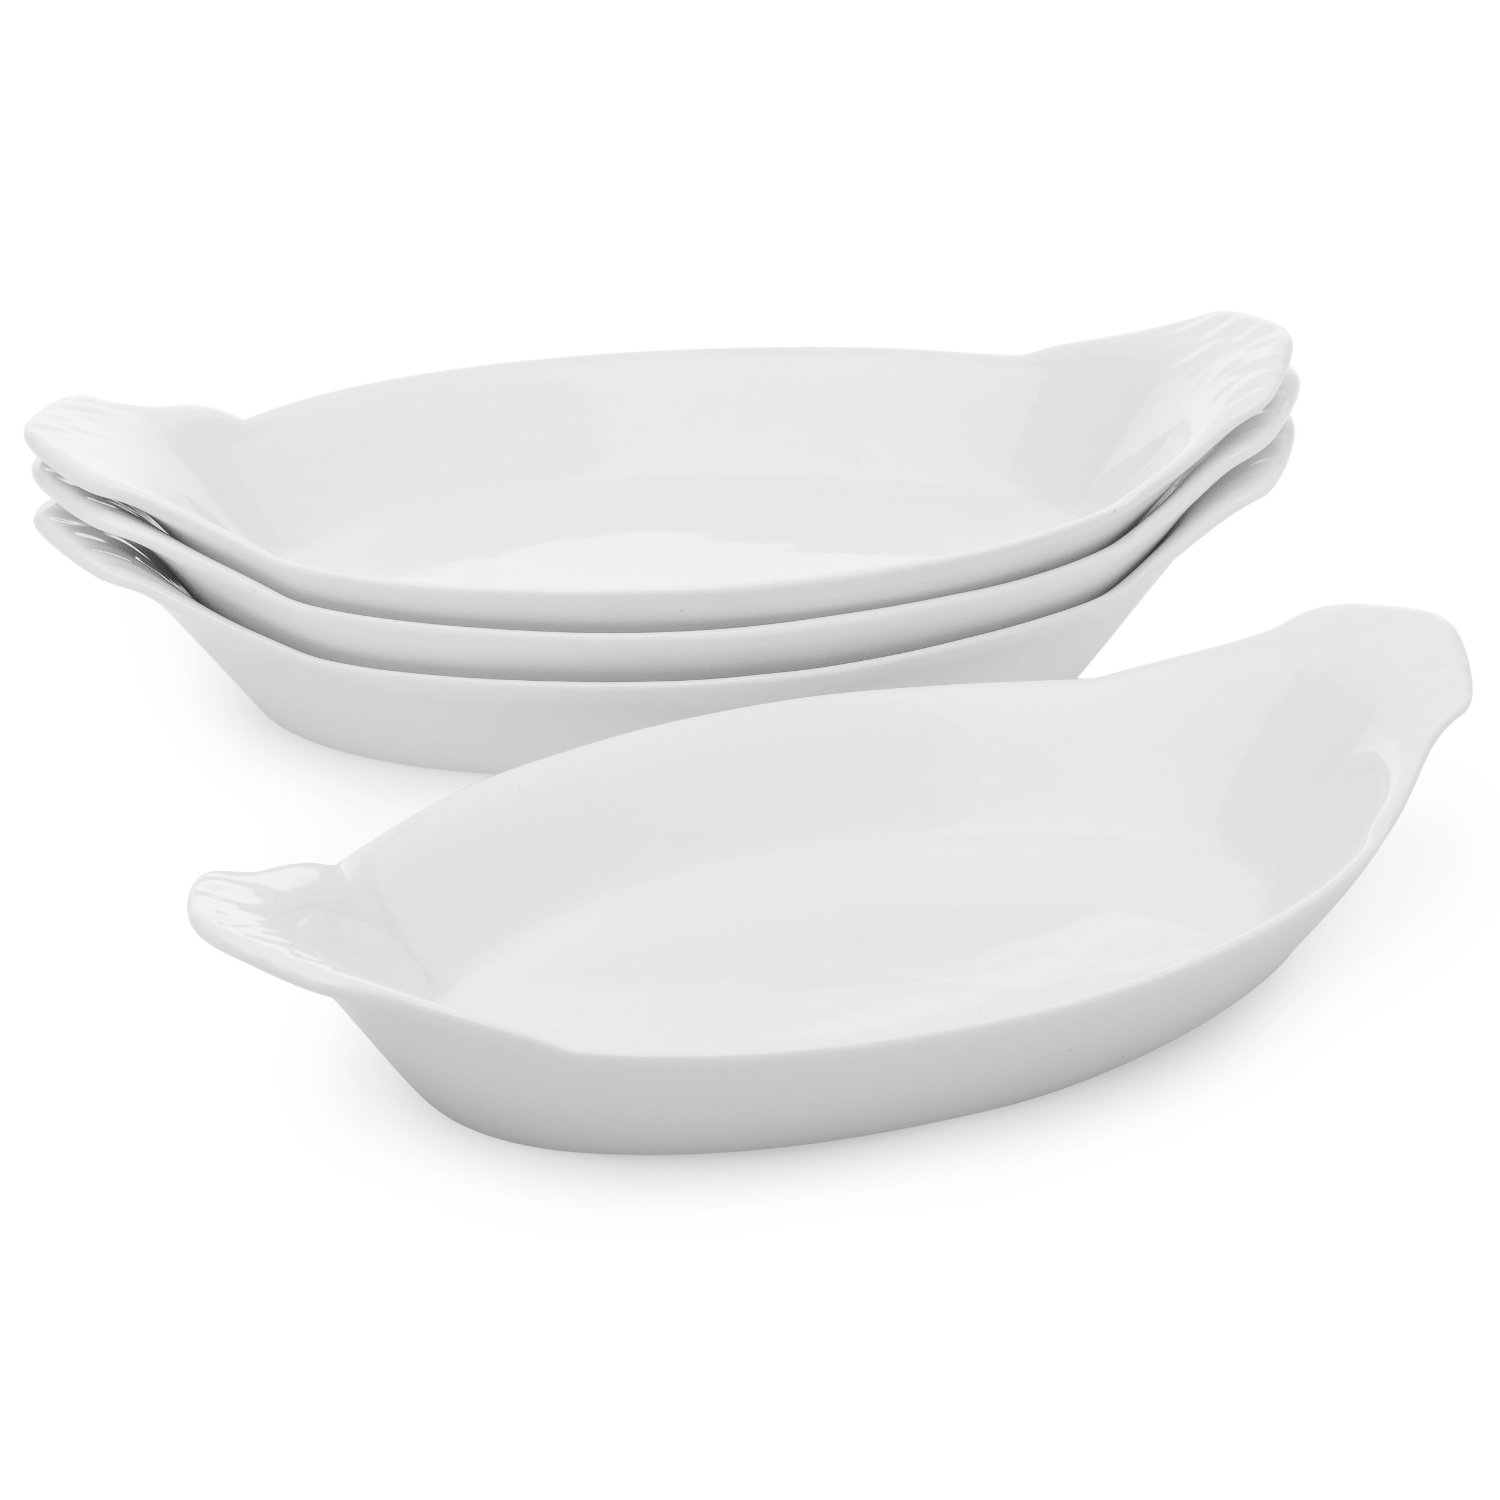 oval-au-gratin-dishes-71NT71BVNJL__SL1500_